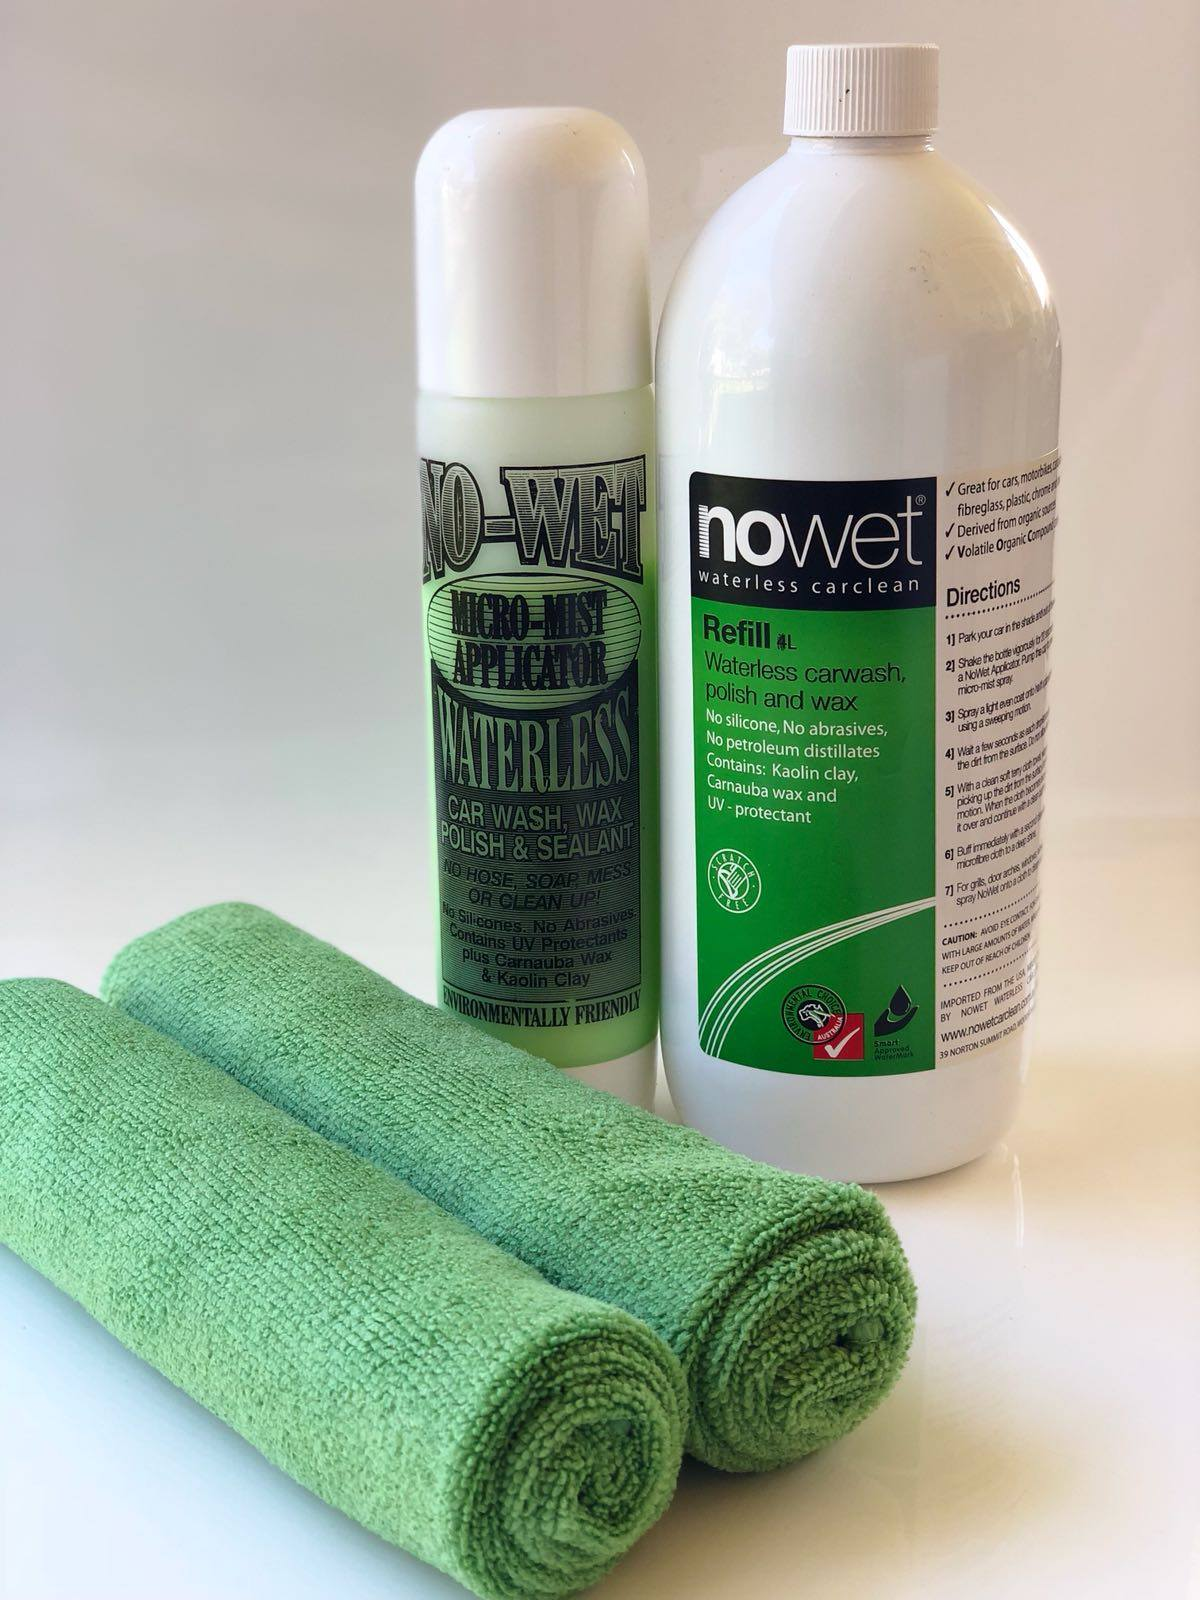 Affordable Eco-friendly Car Cleaning Products | NO-WET CarClean